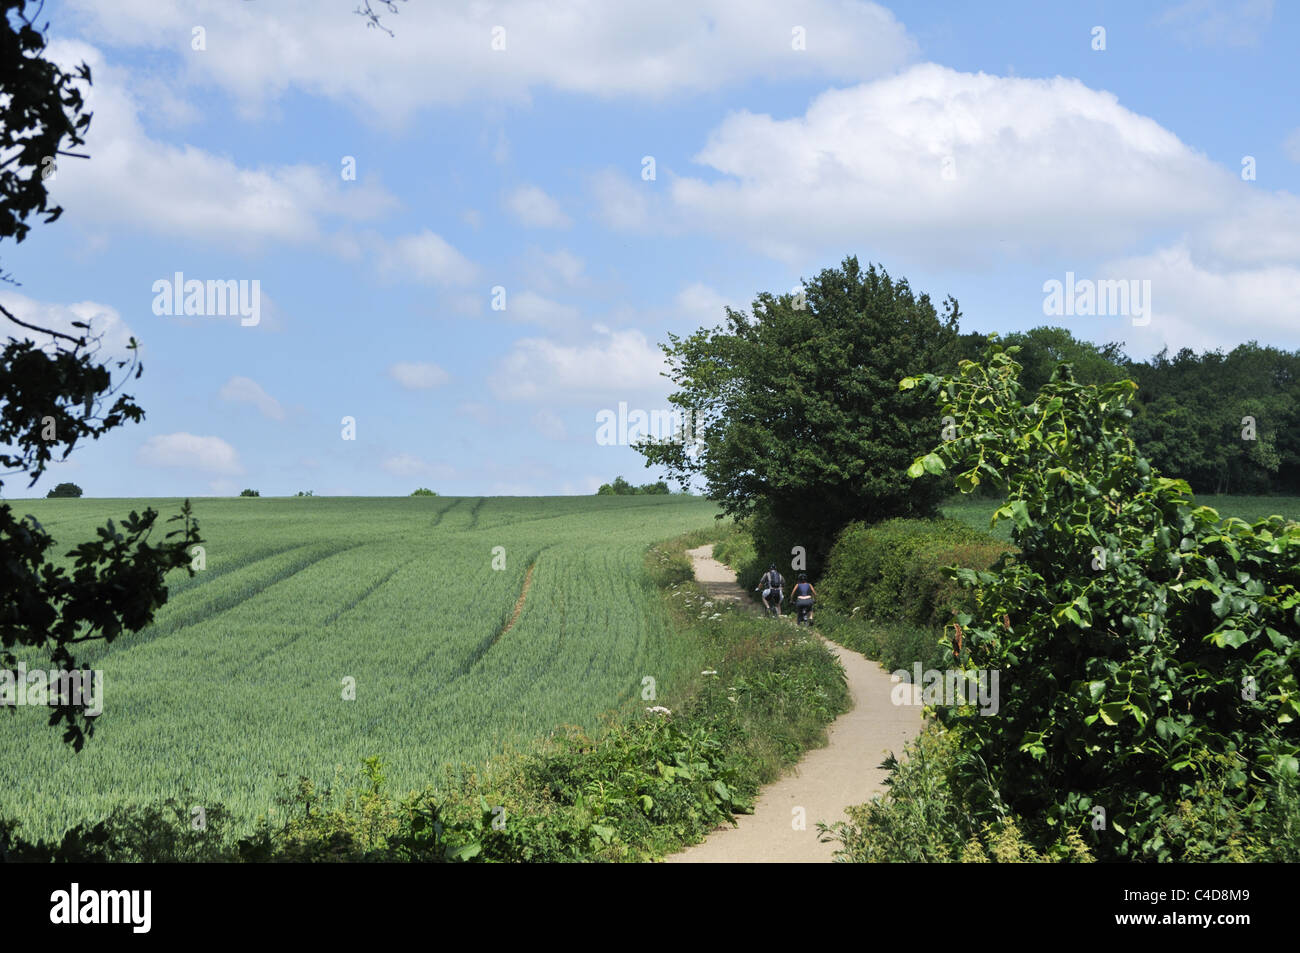 Path by the wheat field in the English countryside. - Stock Image